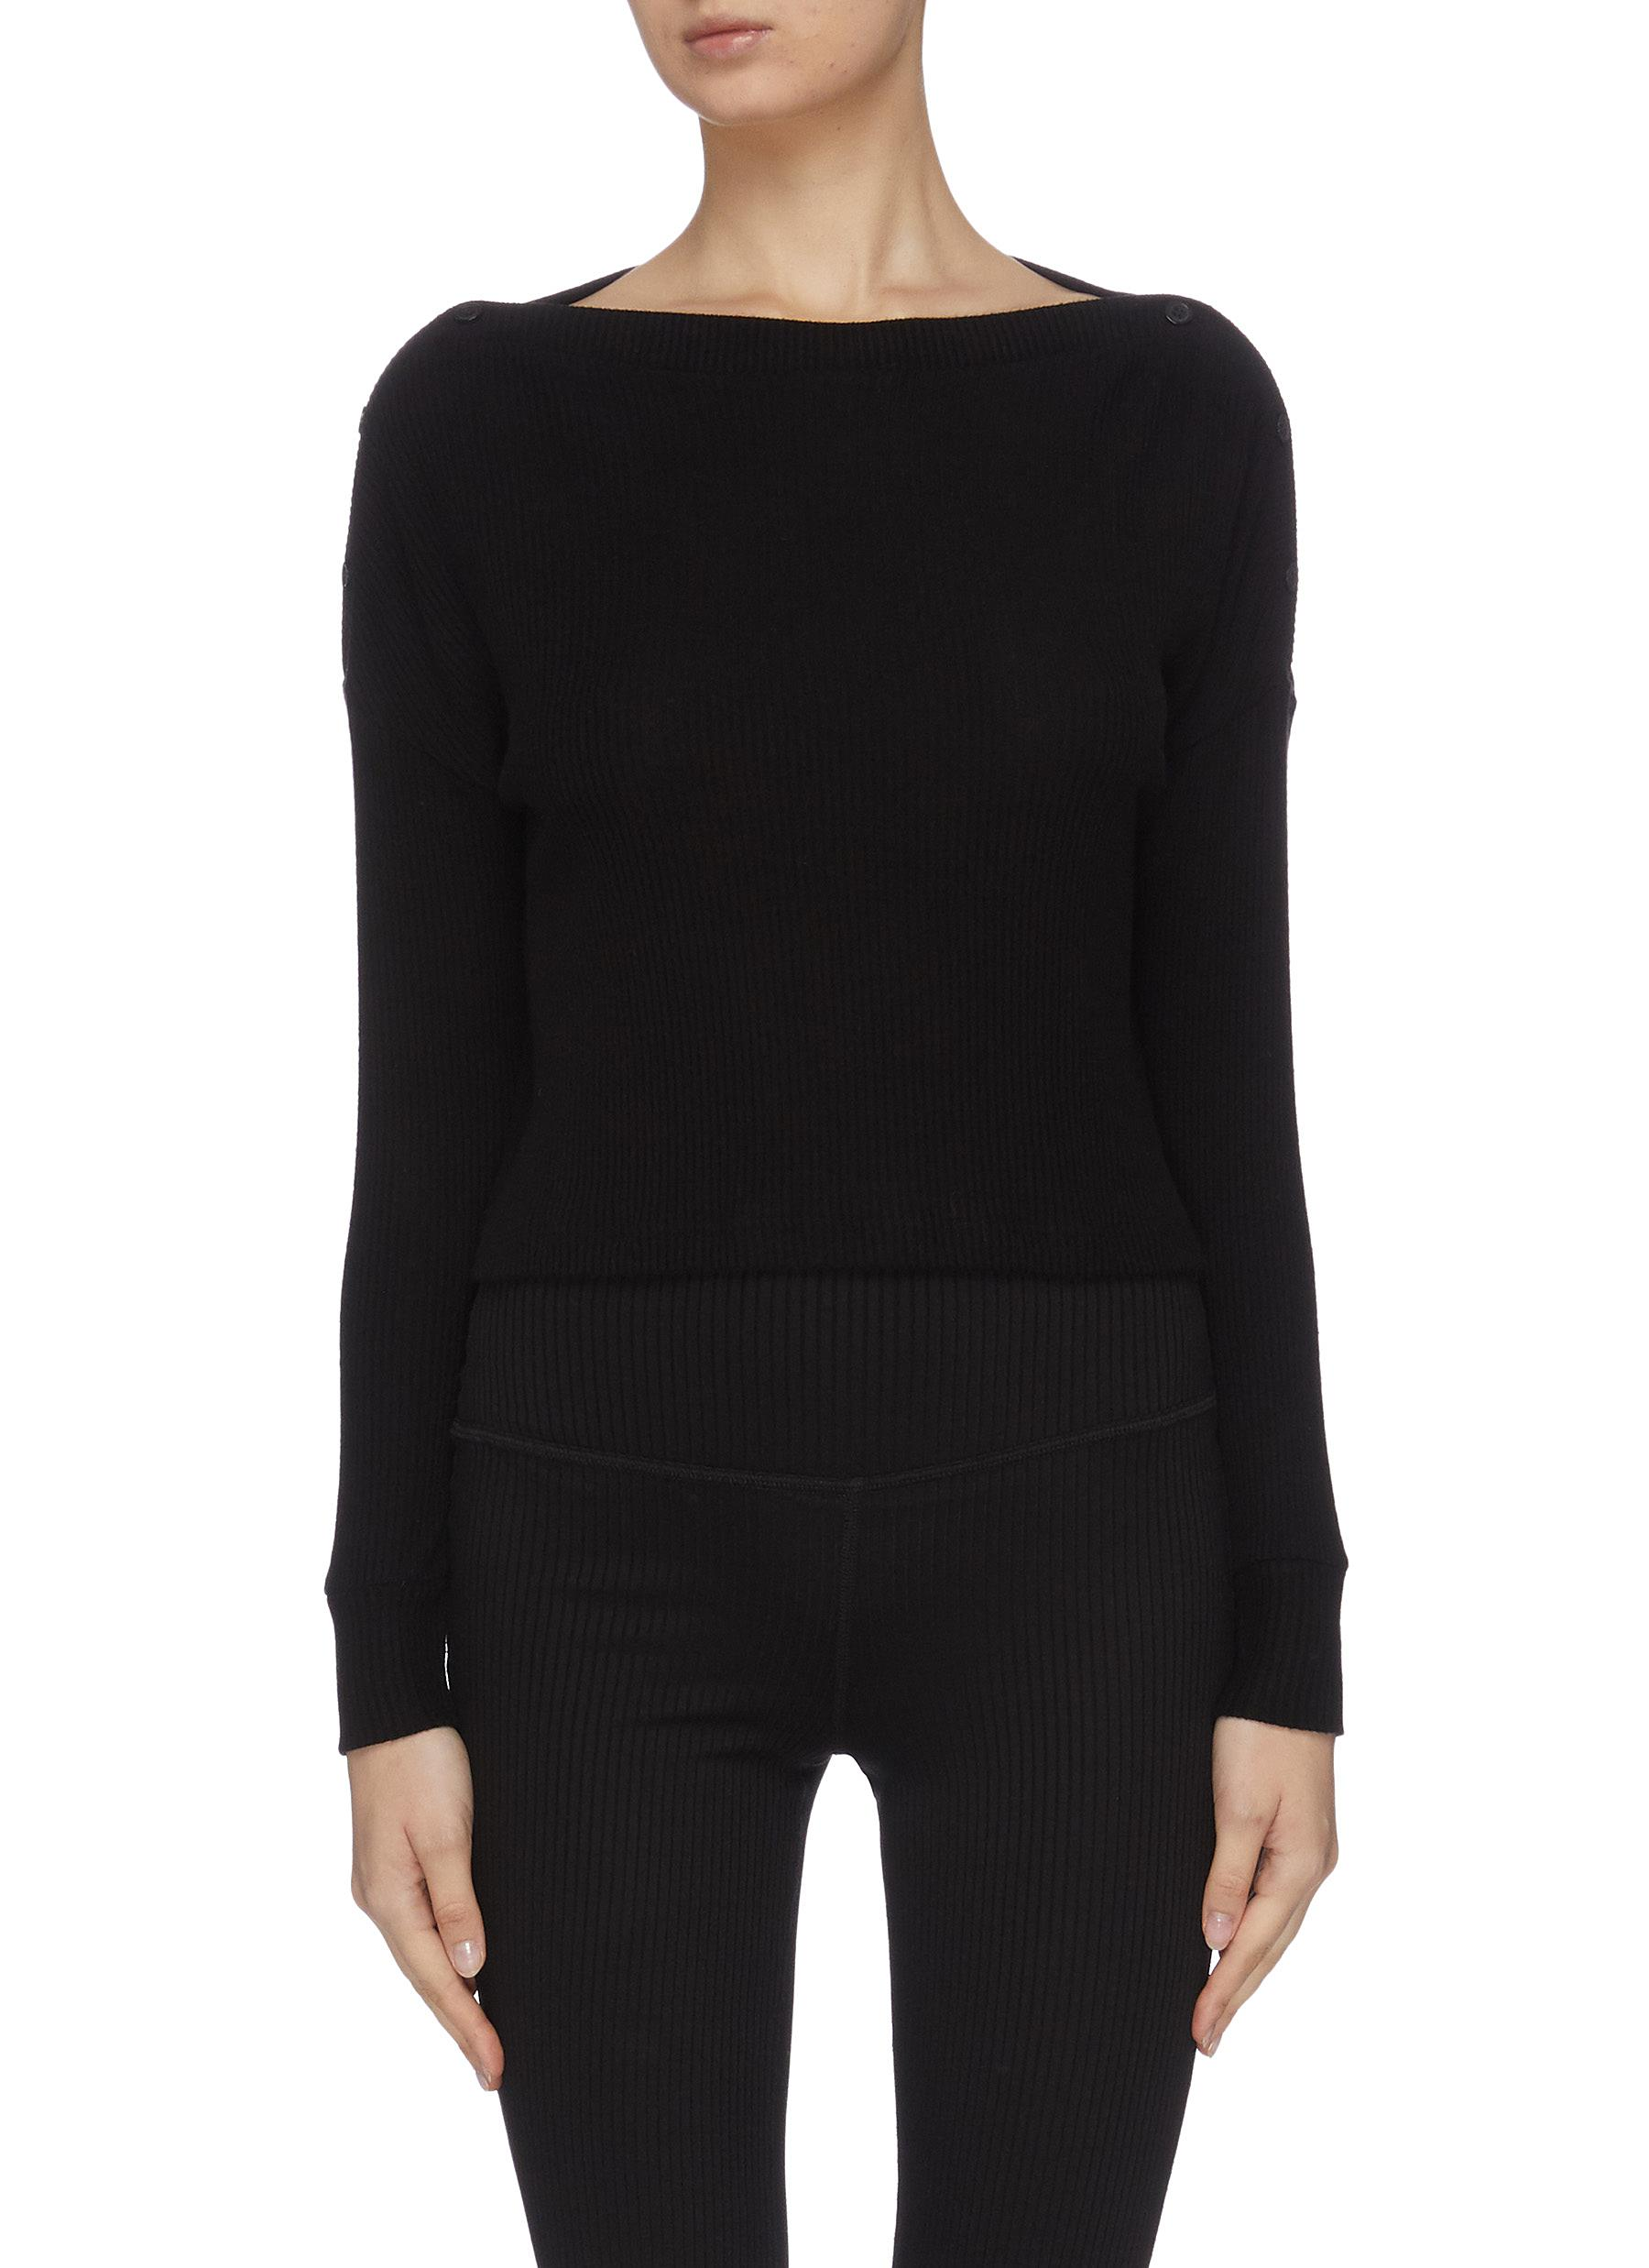 shop Beyond Yoga 'Your line' buttoned knit top online